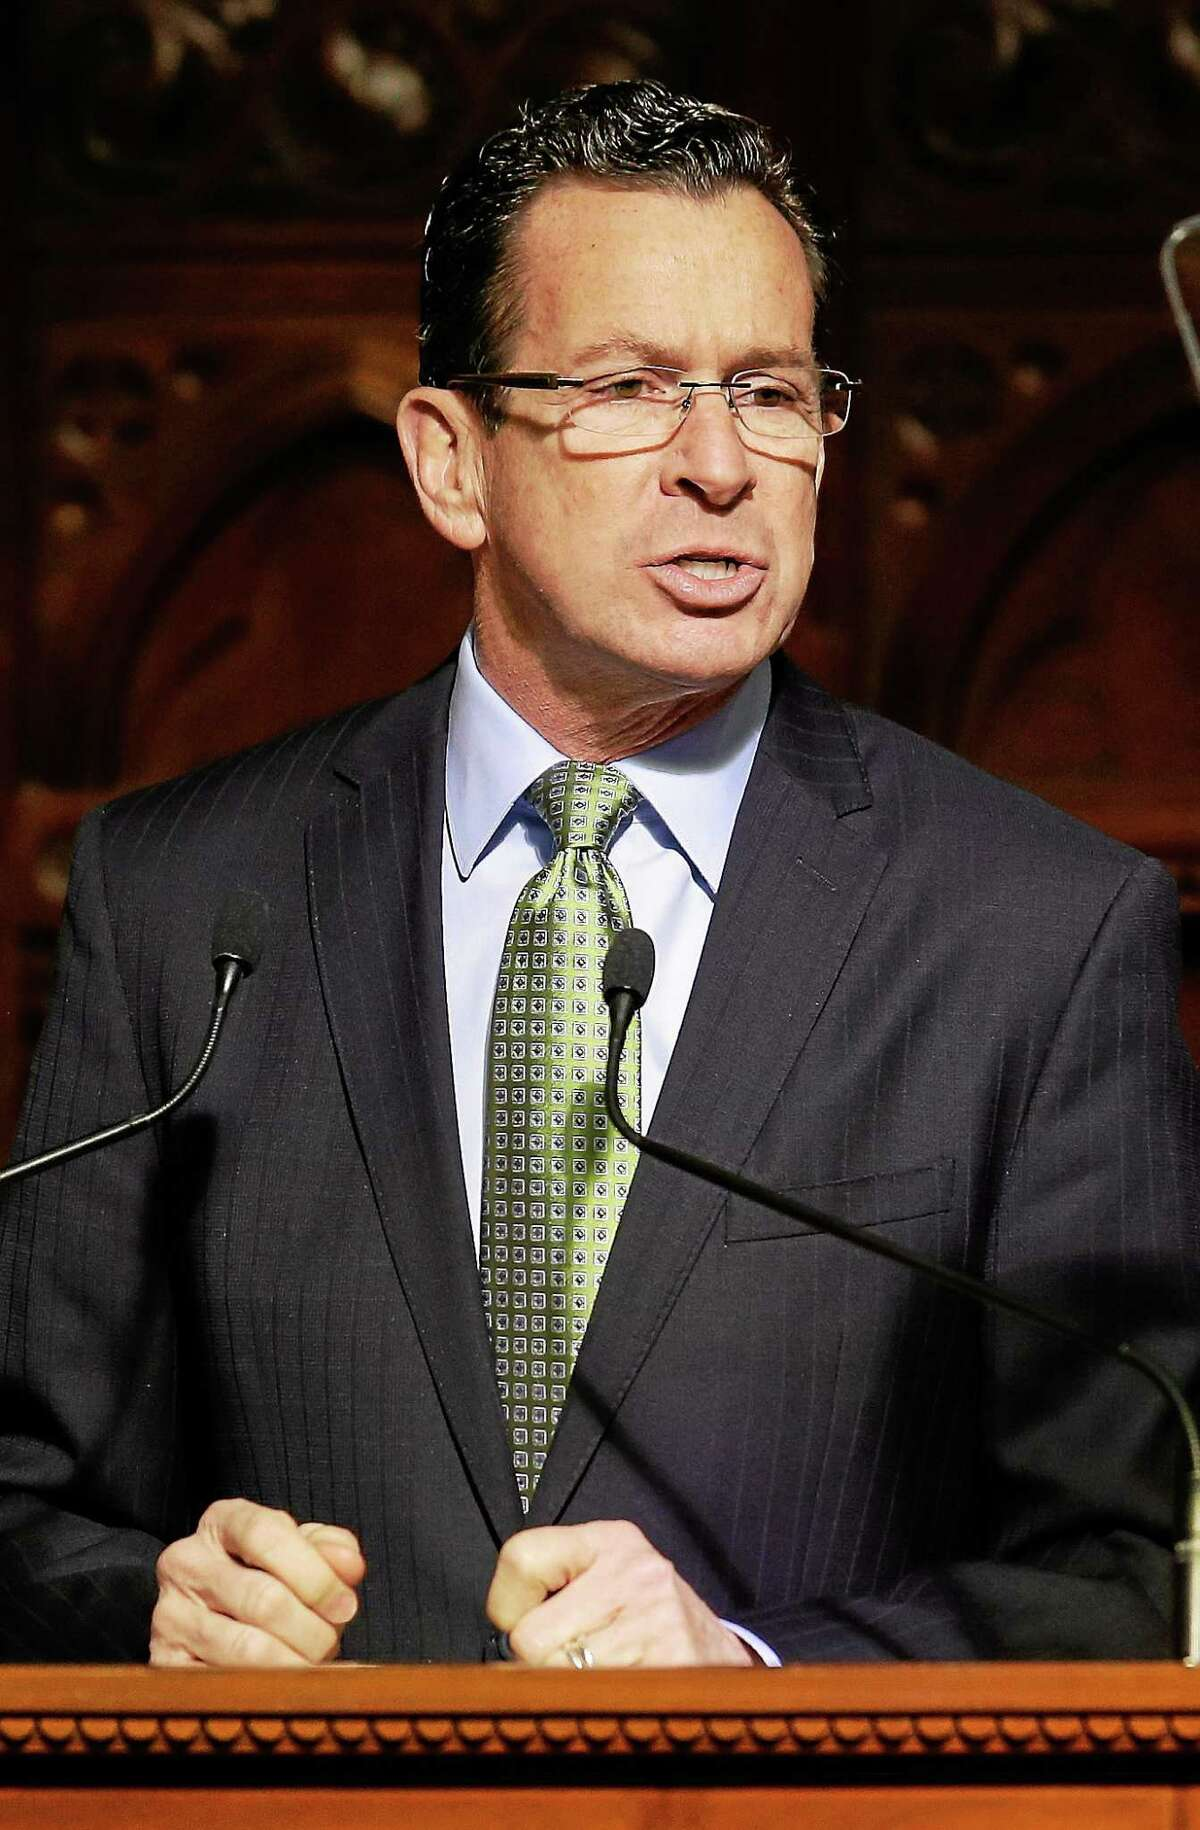 Connecticut Gov. Dannel P. Malloy gestures with his fists as he emphasizes a point during his 2014 State of the State address.